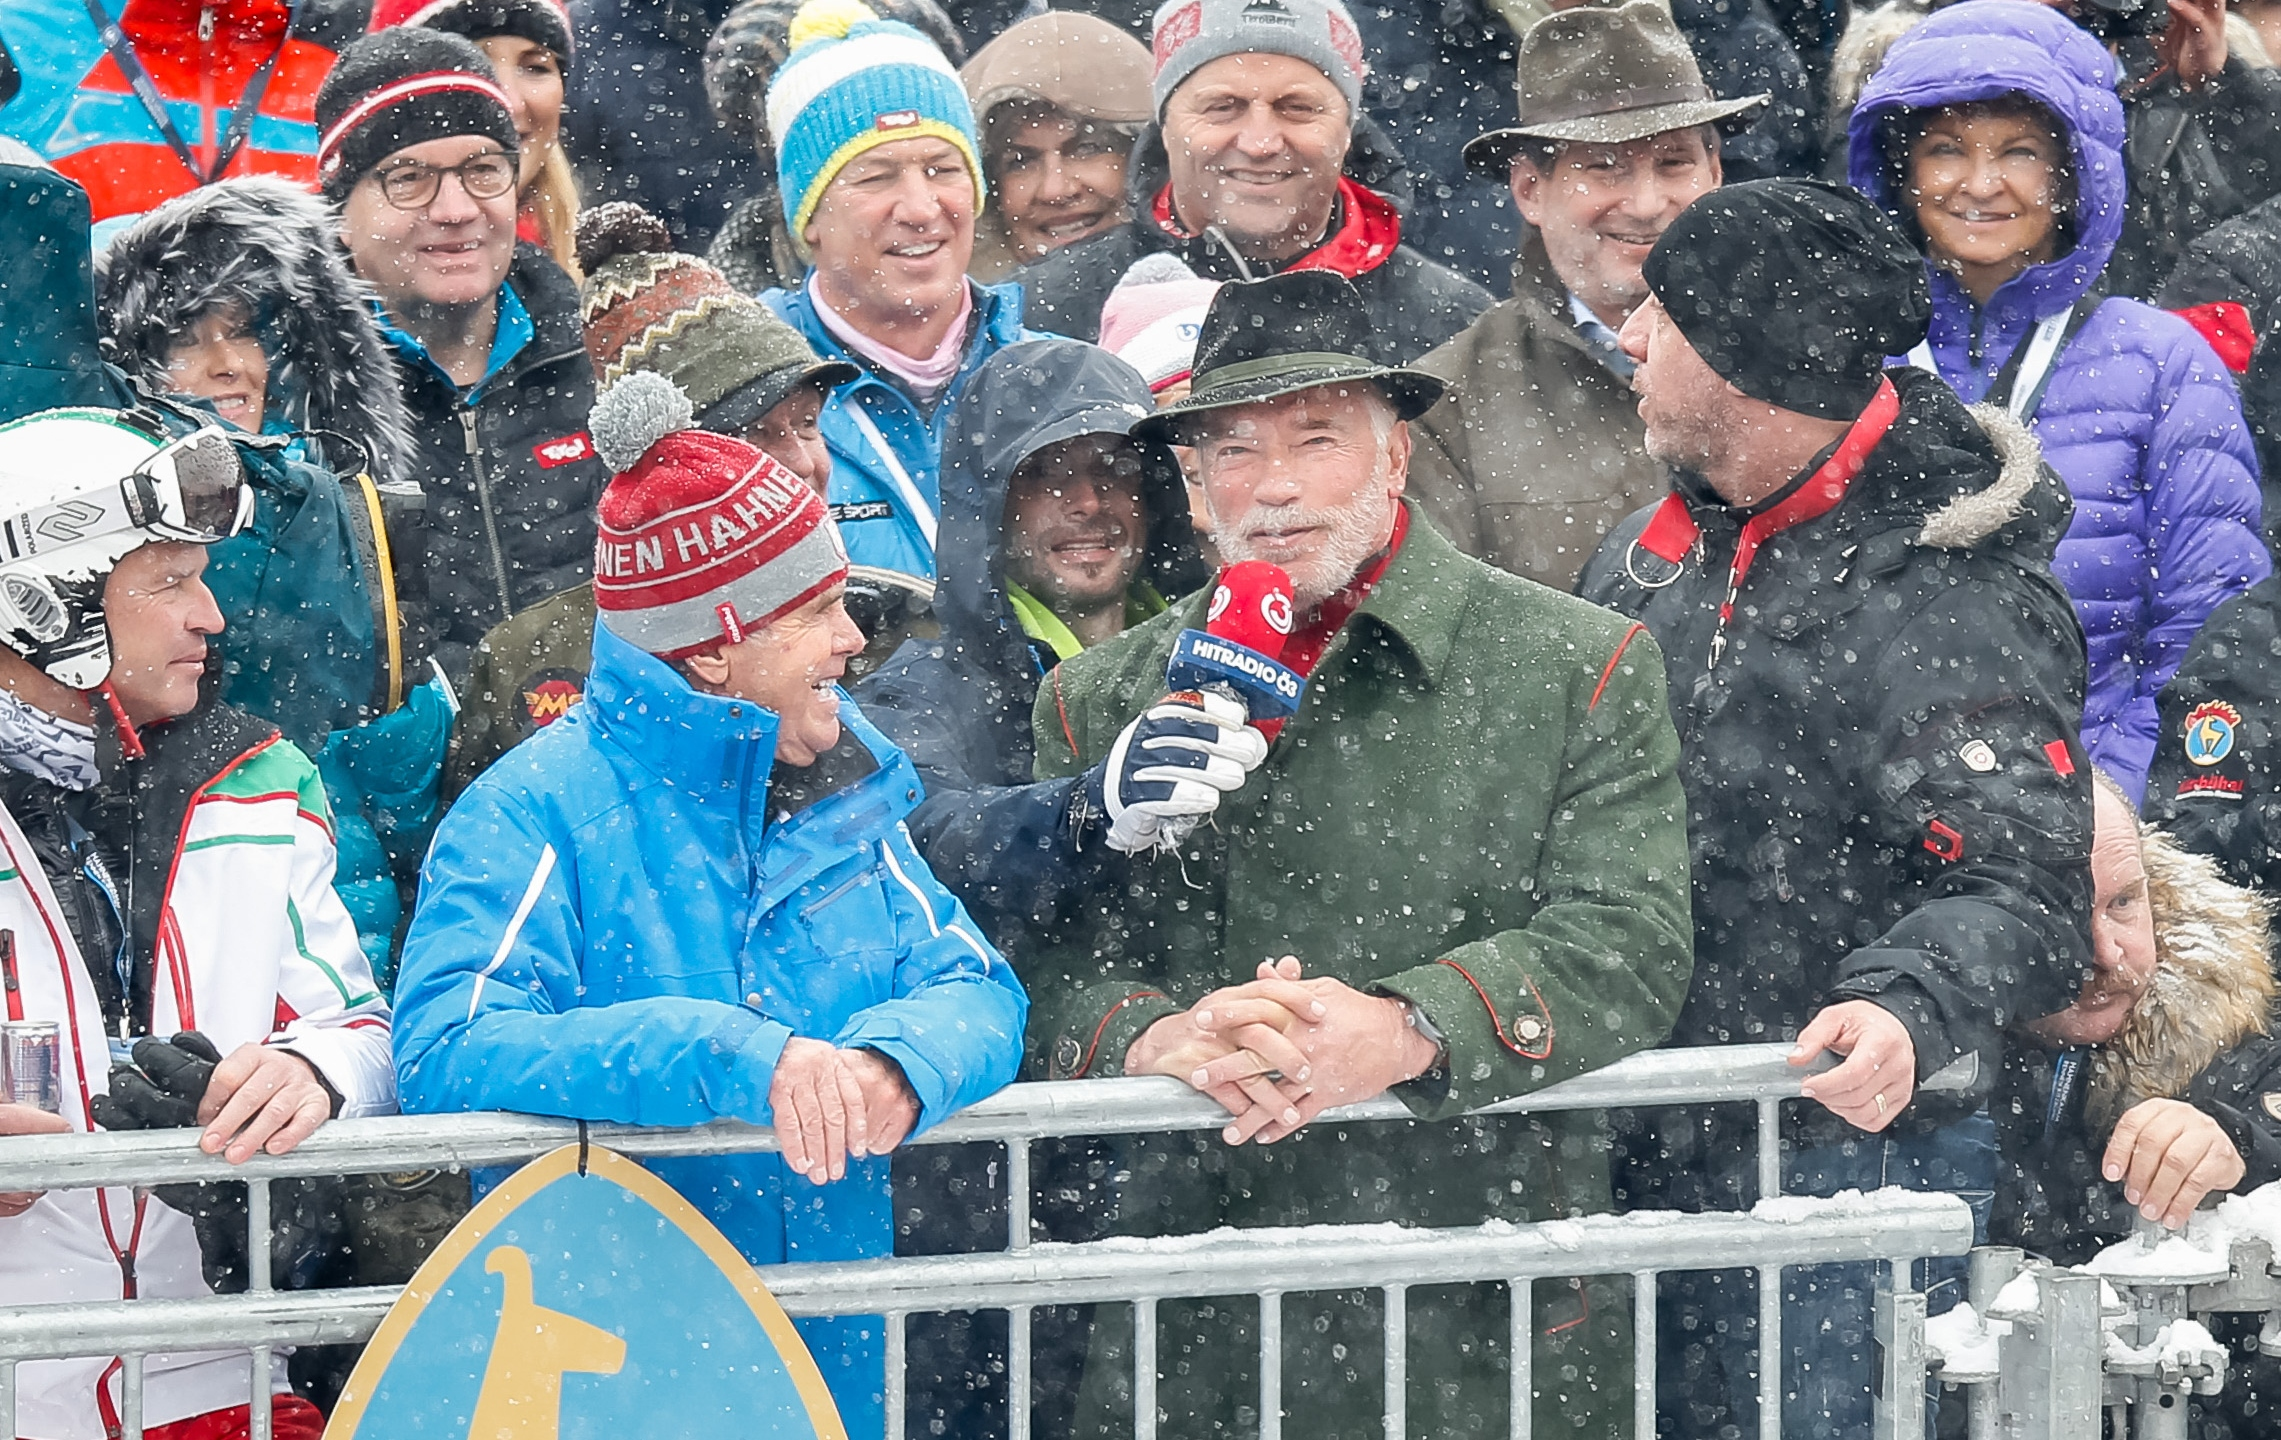 Arnold Schwarzenegger appears in the Audi FIS Alpine Ski World Cup Men's Slalom on Jan. 26, 2019 in Kitzbuehel Austria. (Credit: Christophe Pallot/Agence Zoom/Getty Images)